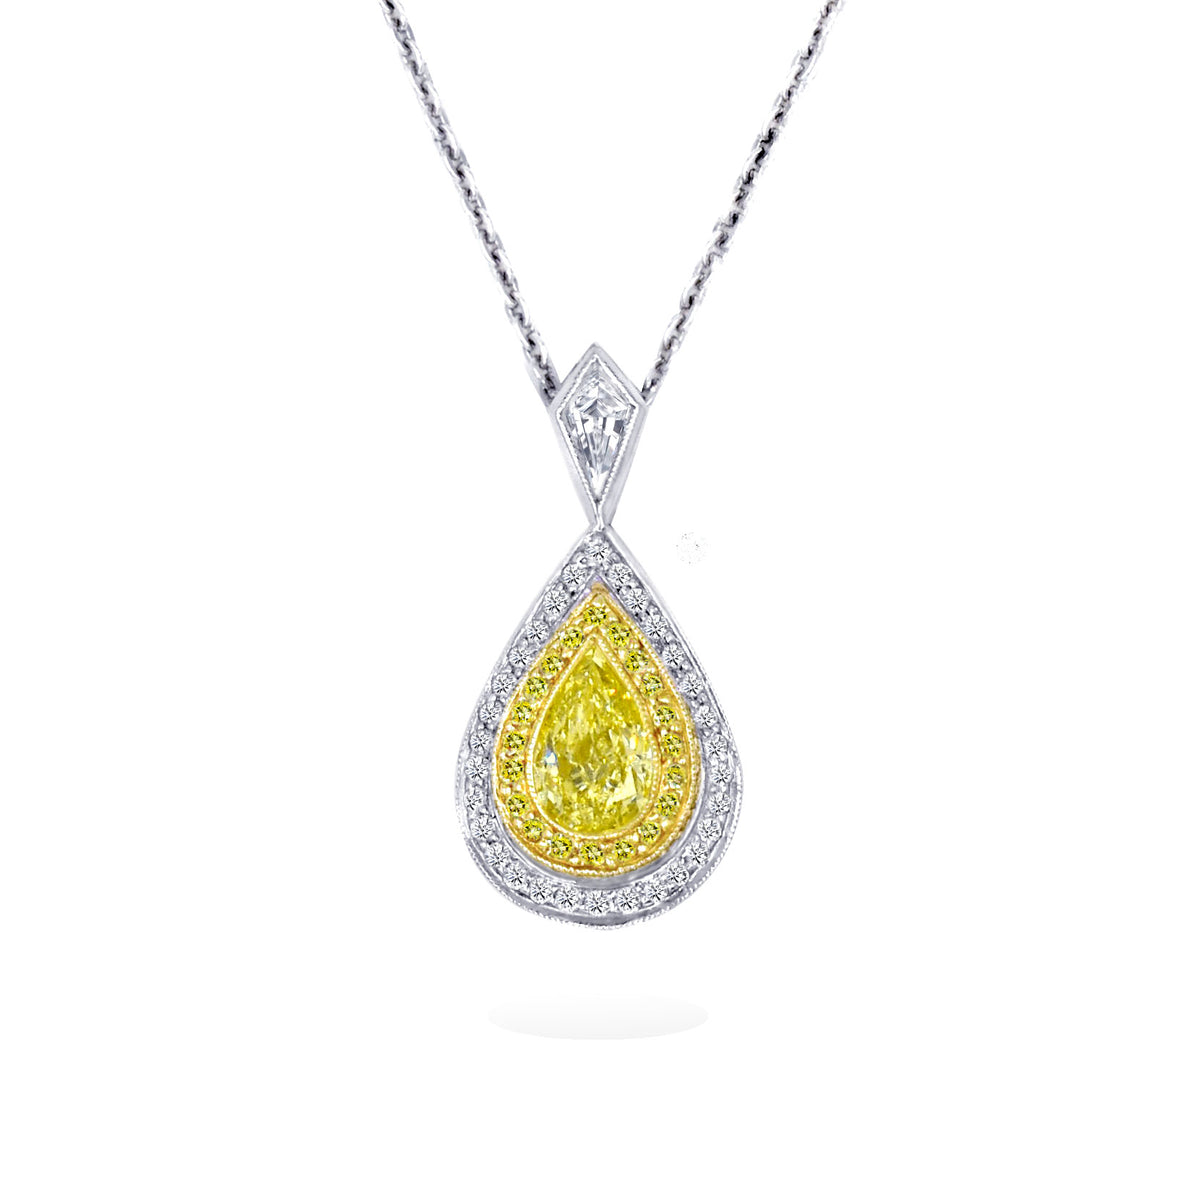 JB Star Platinum and 18K Yellow Gold Pear Shaped Pendant with a Yellow Diamond